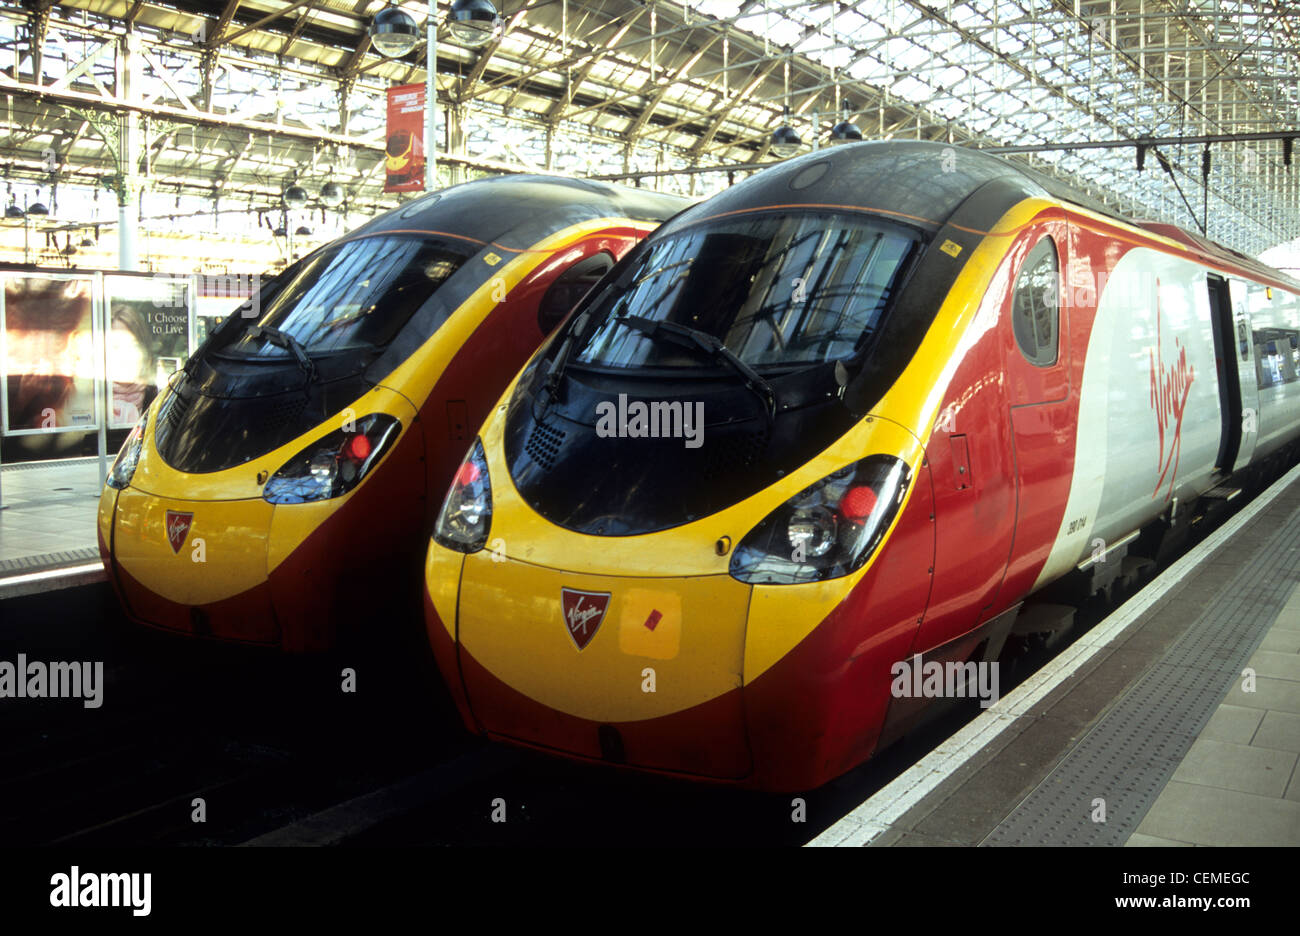 Great Britain, England, Manchester, Picadilly station, Virgin trains on platform. - Stock Image